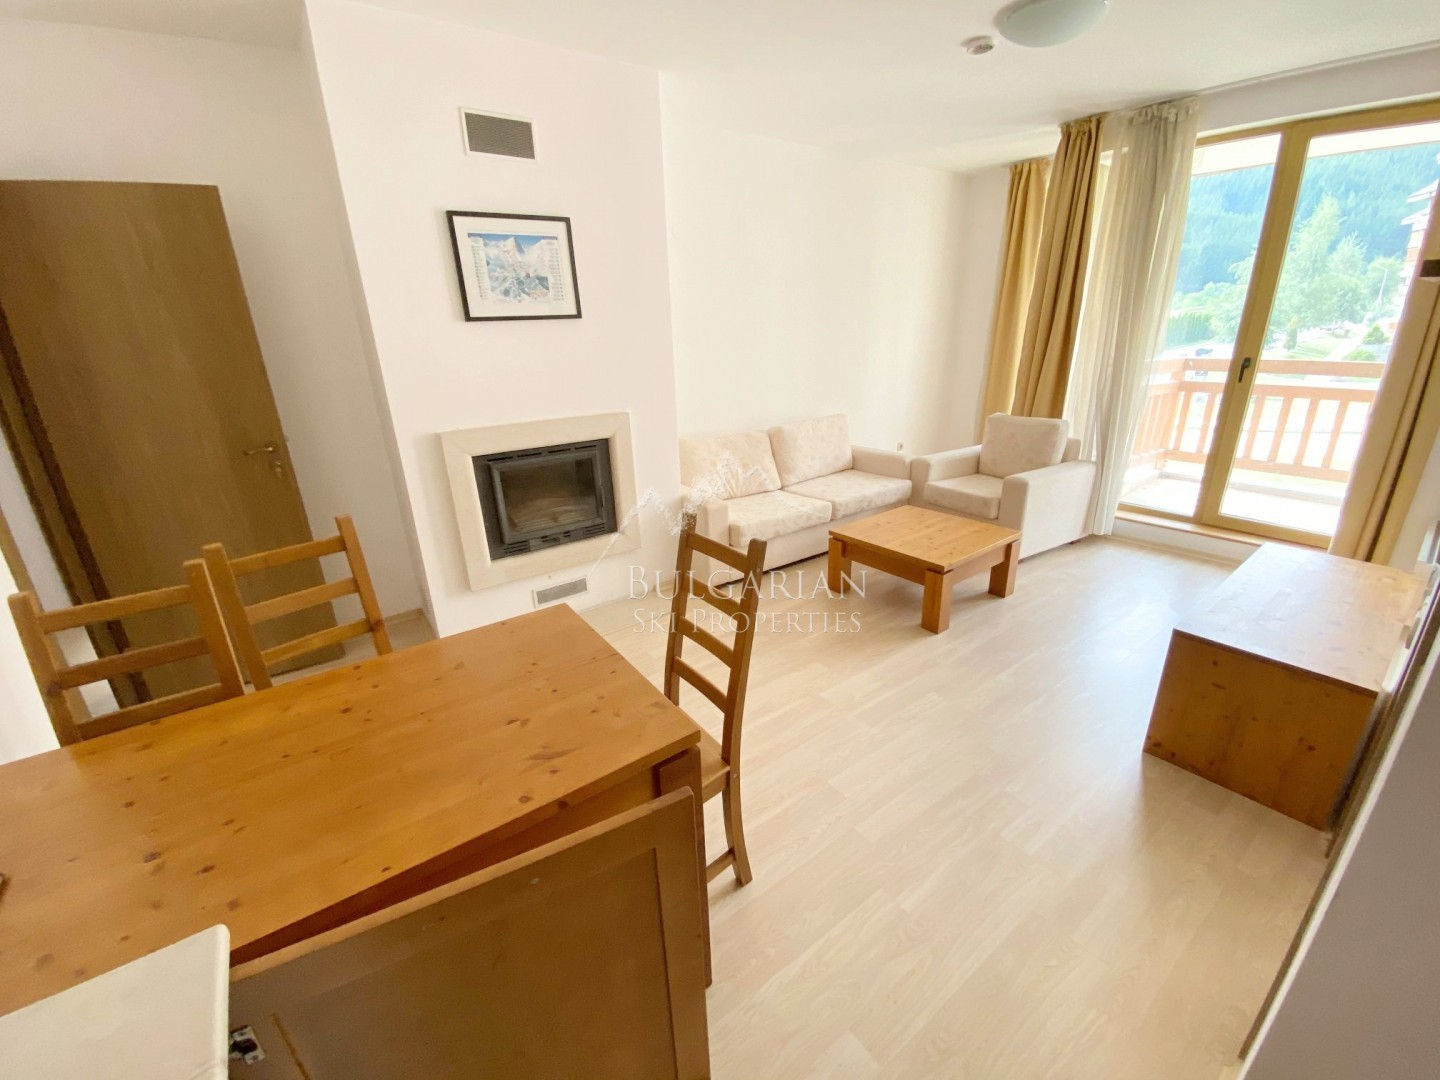 Two-bedroom apartment with two bathrooms for sale in St John Park, Bansko